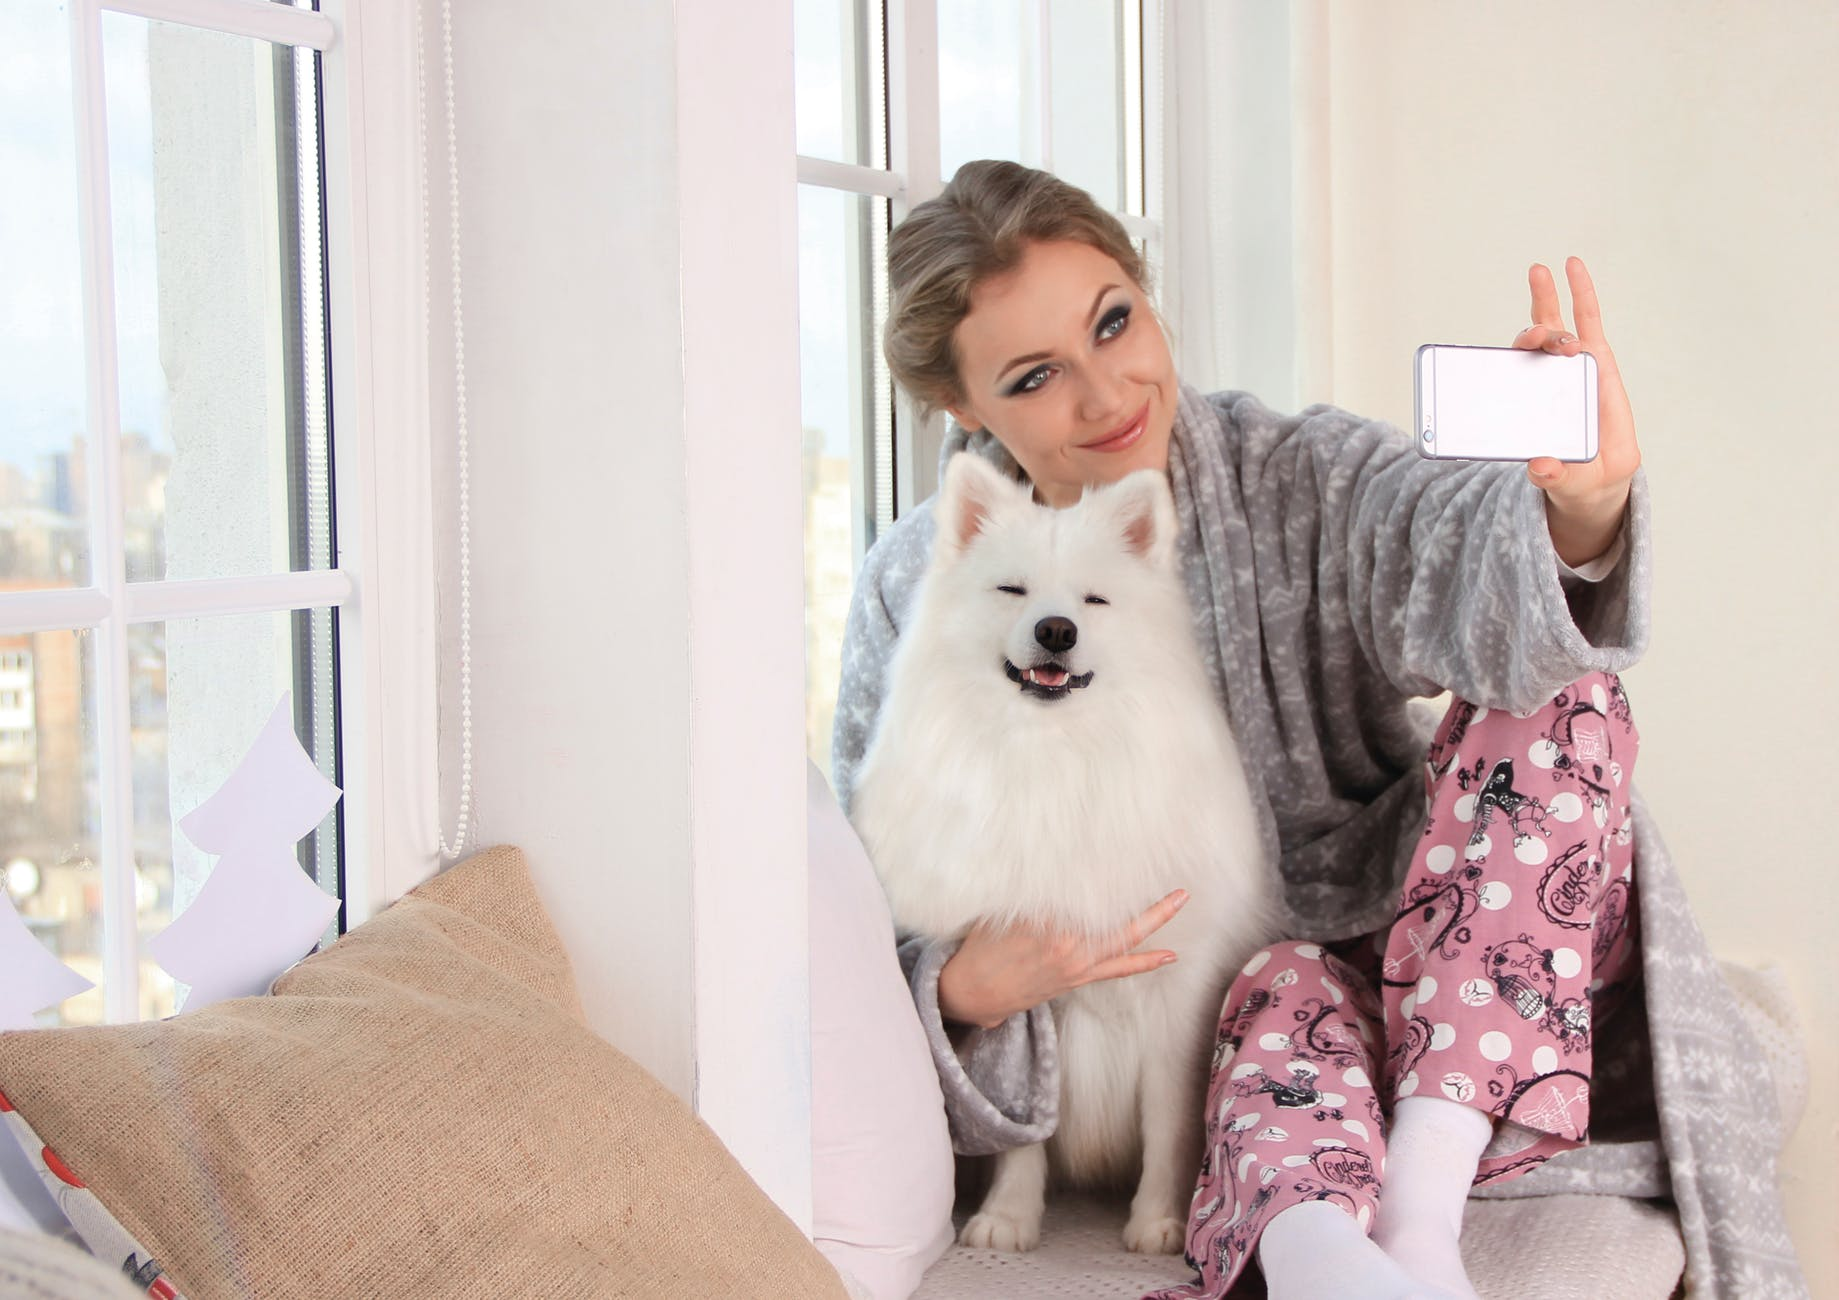 Pet Owners Admit To Giving Dogs Protein Shakes To Make Them More Instagrammable